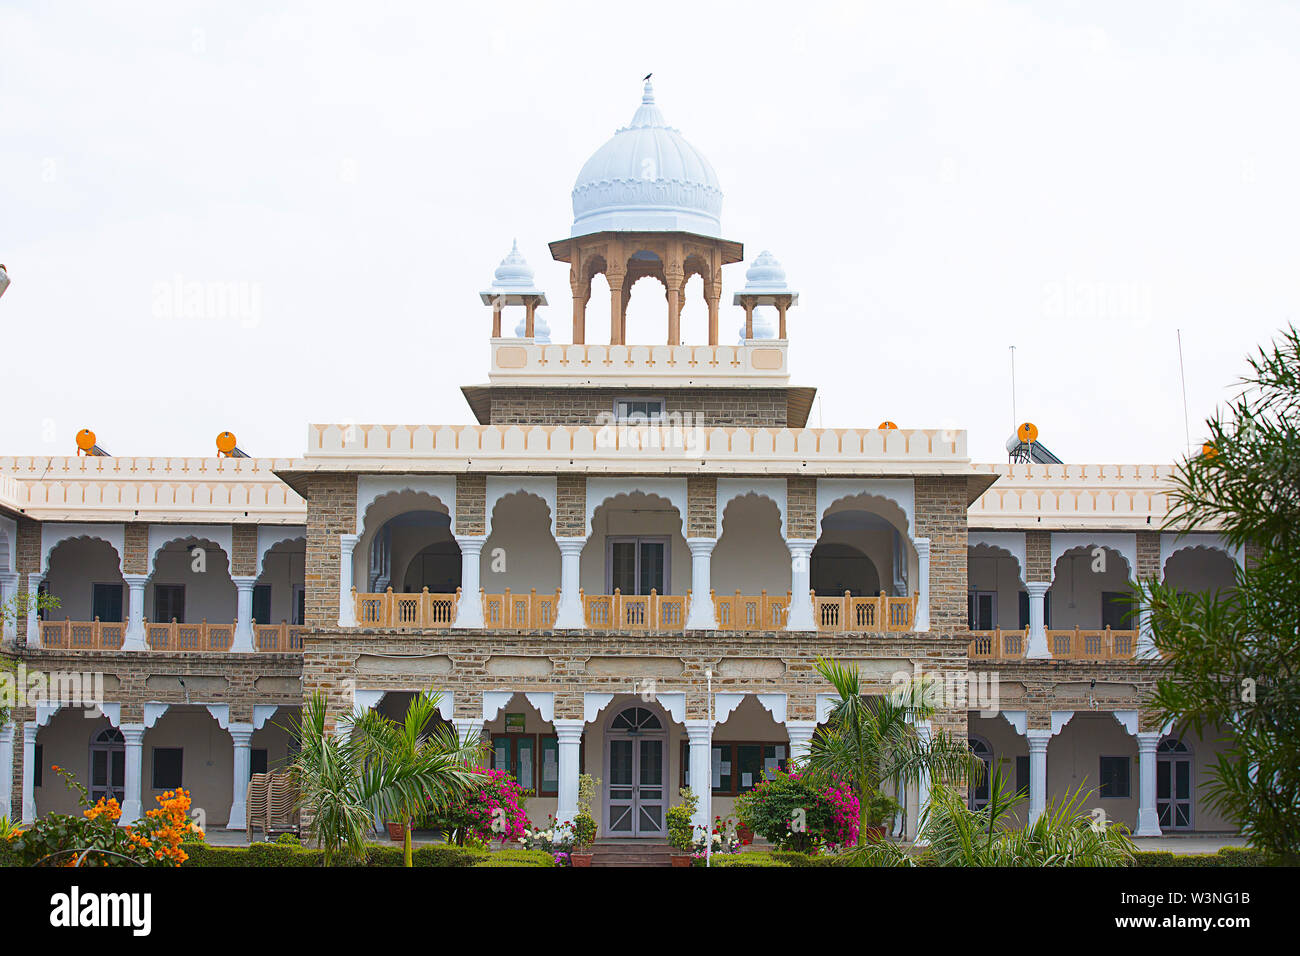 AJMER, RAJASTHAN, INDIA - JAN 21, 2019; Mayo College Building, Heritage architecture Property In Ajmer - Image - Stock Image